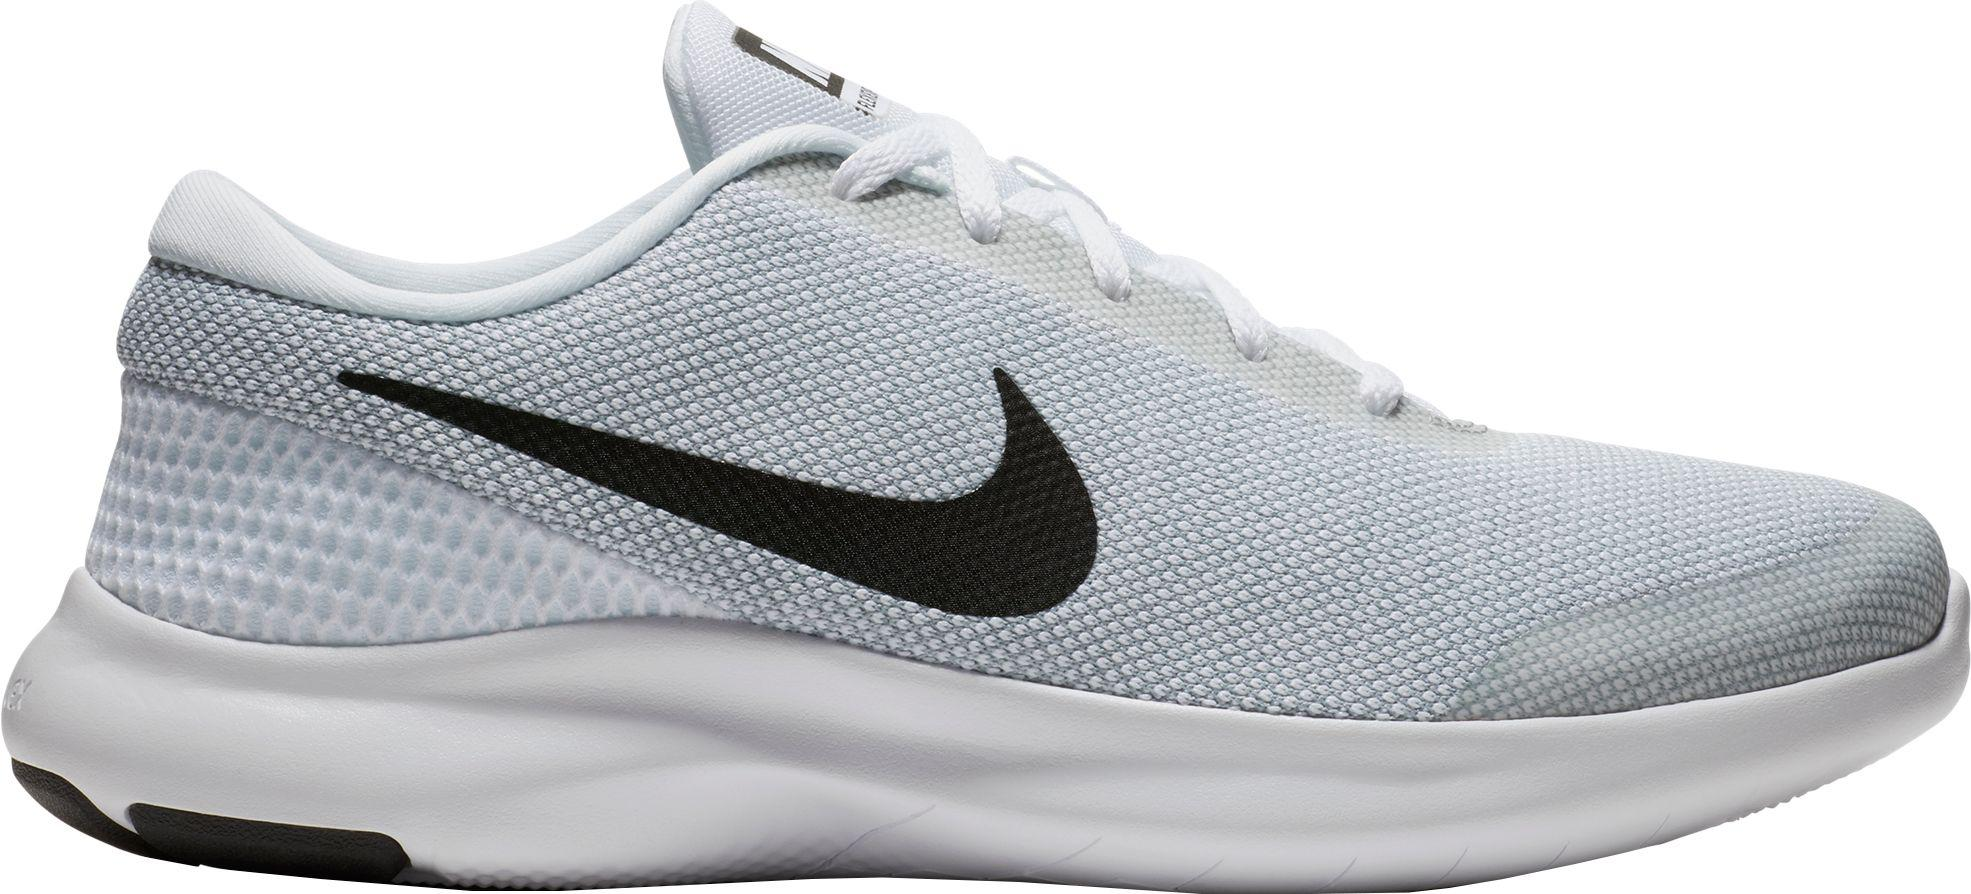 f4e7a8b825c7f Lyst - Nike Flex Experience Rn 7 Running Shoes in Gray for Men